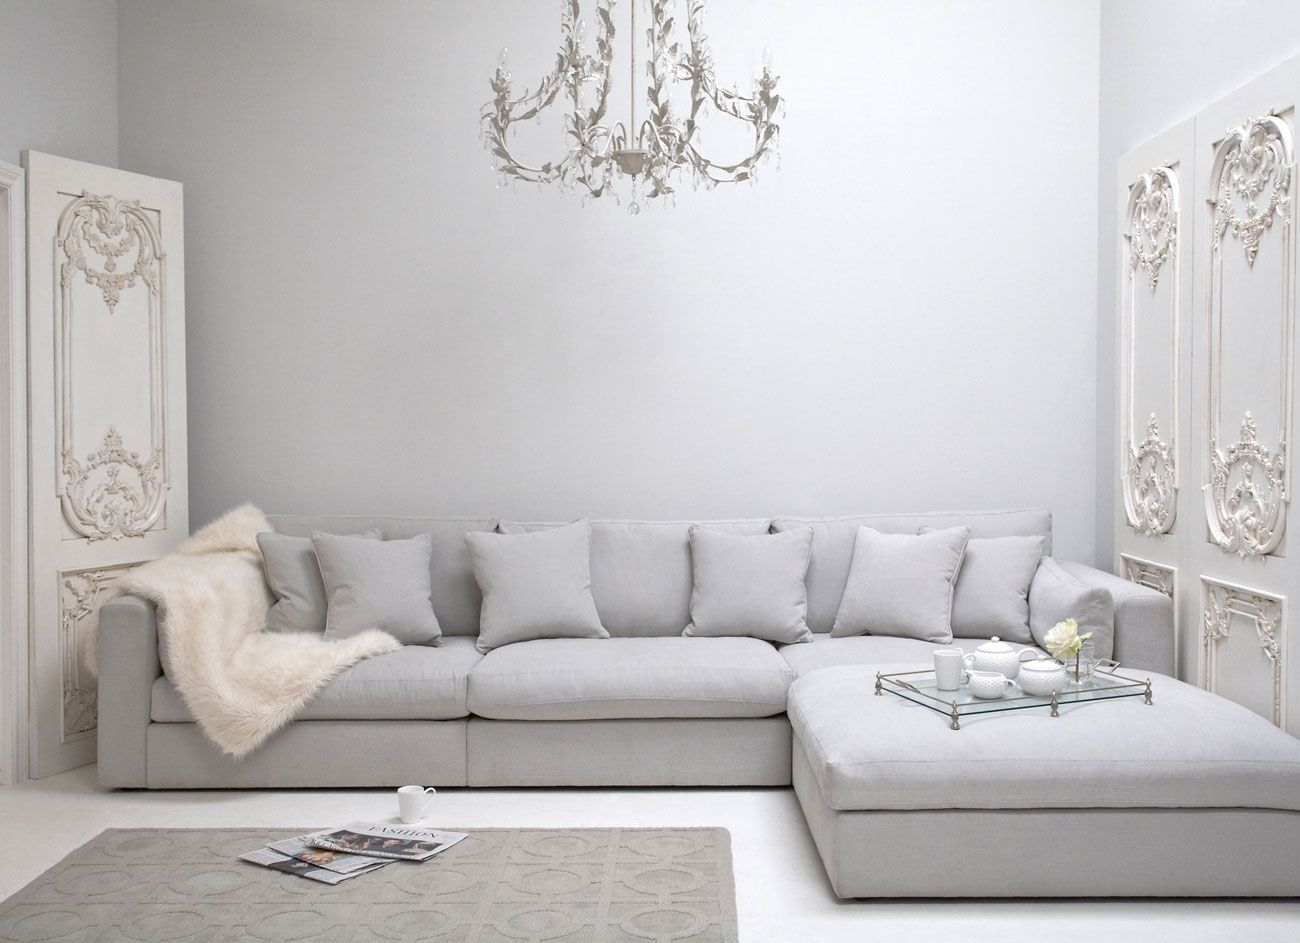 Corner Living Room Table Round For 40 Best Sofa Styles Styling This Is My Ab Fave But I Cannot Find One Like It Anywhere